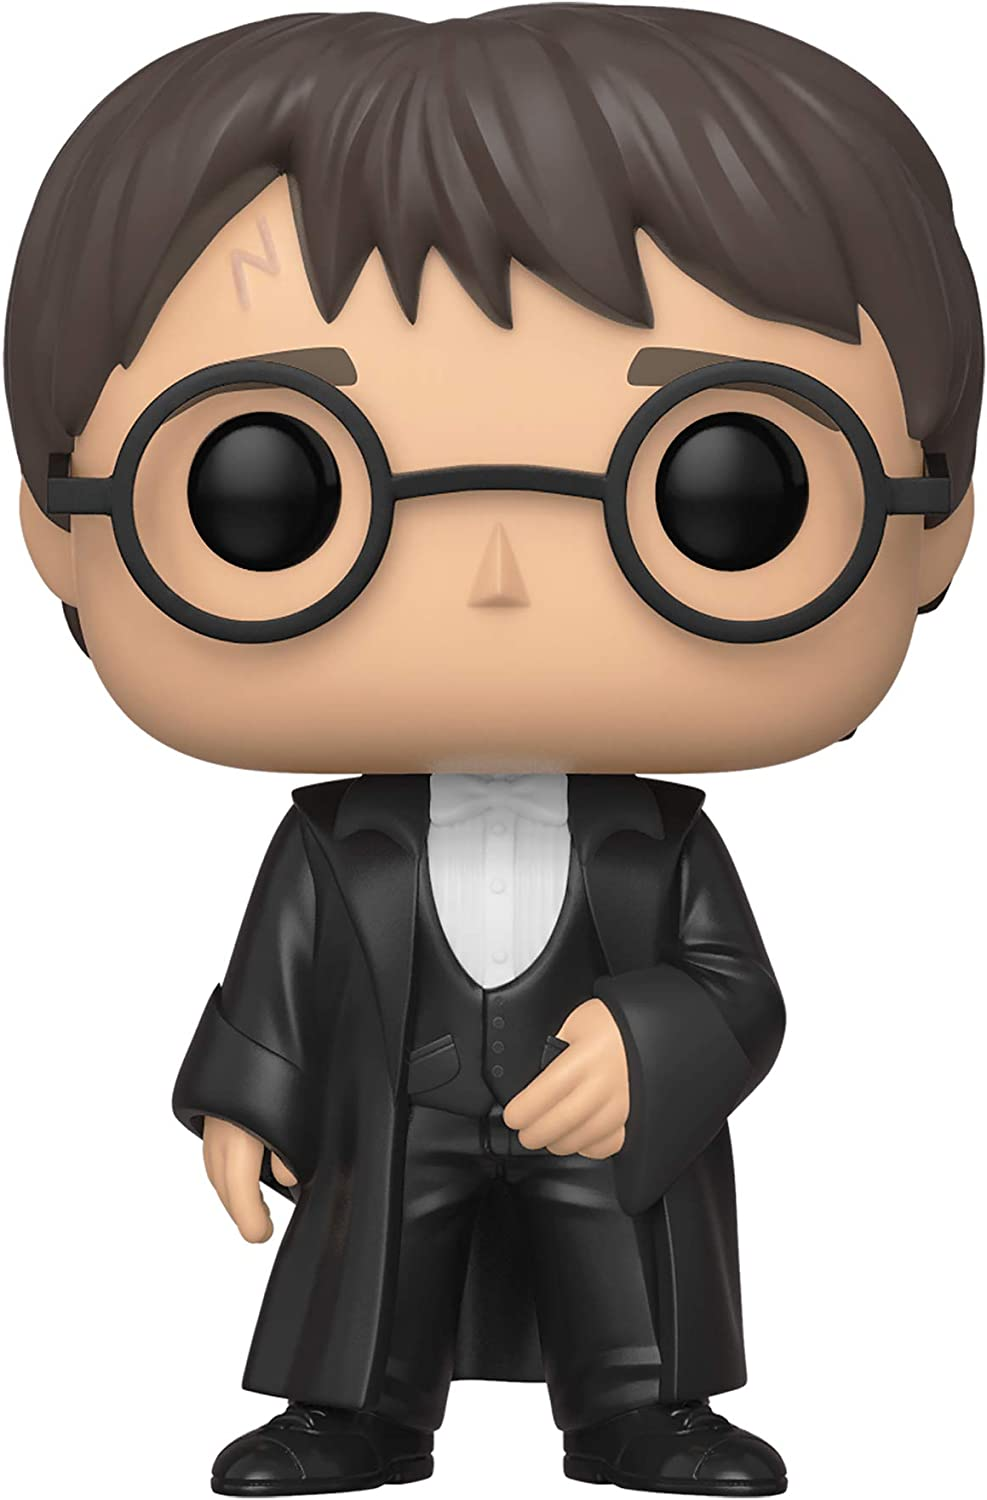 Pop! Figura de Vinilo: Harry Potter S7 - Harry Potter (Yule)